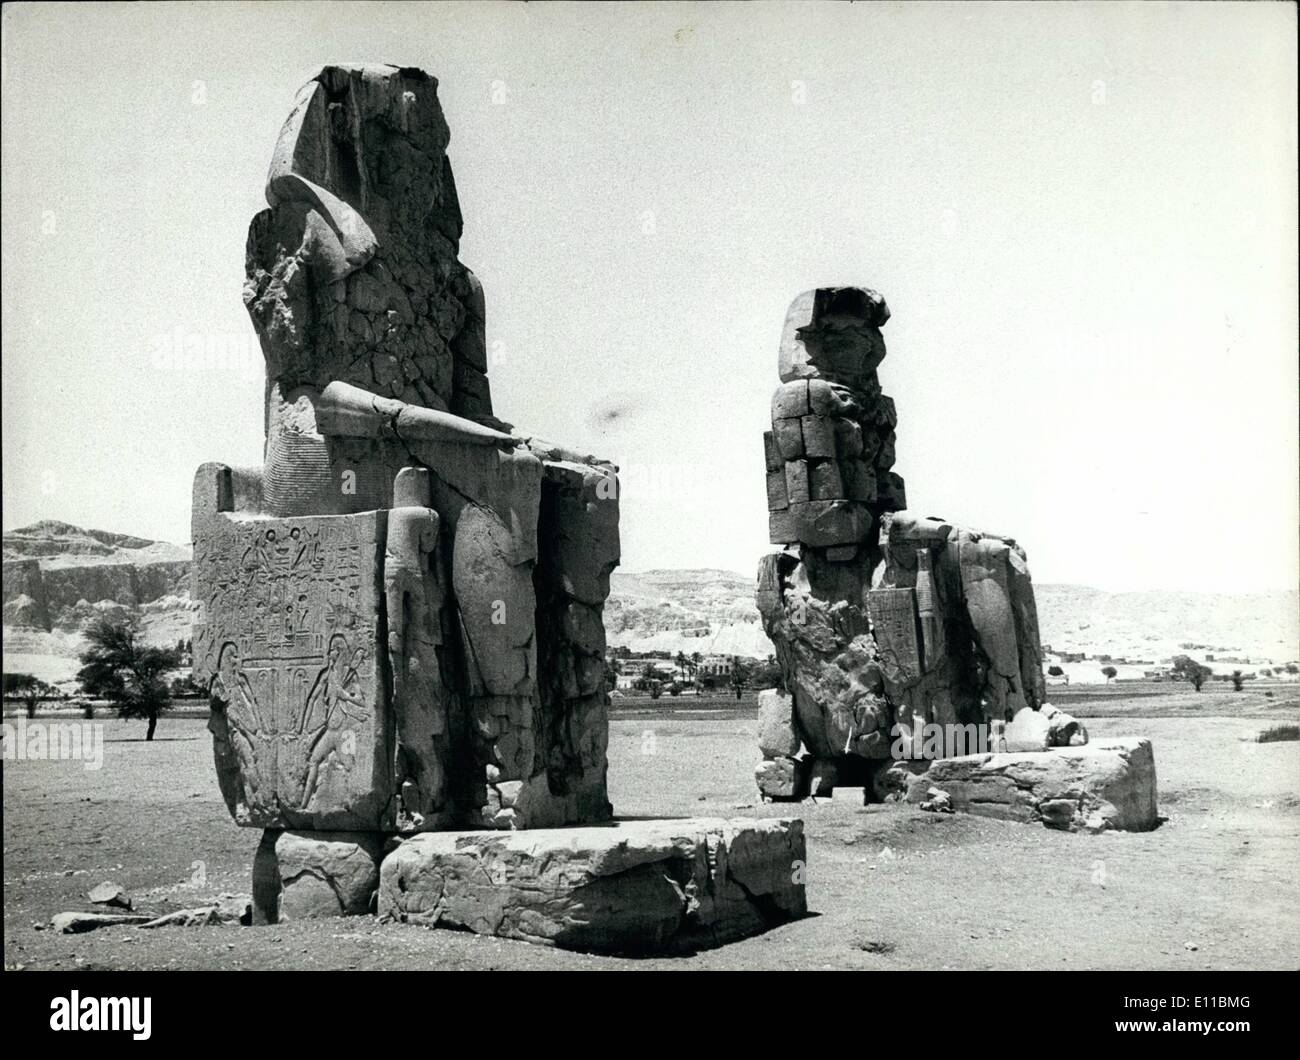 Aug. 08, 1976 - The statues of Luxor will be renovated. The statues of Memnon near Luxor in Southern Egypte will be renovated, as the lower parts have been damaged by the water, led on the fields. The statues are 17 meters high and made from a single stone. They are said to show Amenophis III. - Stock Image